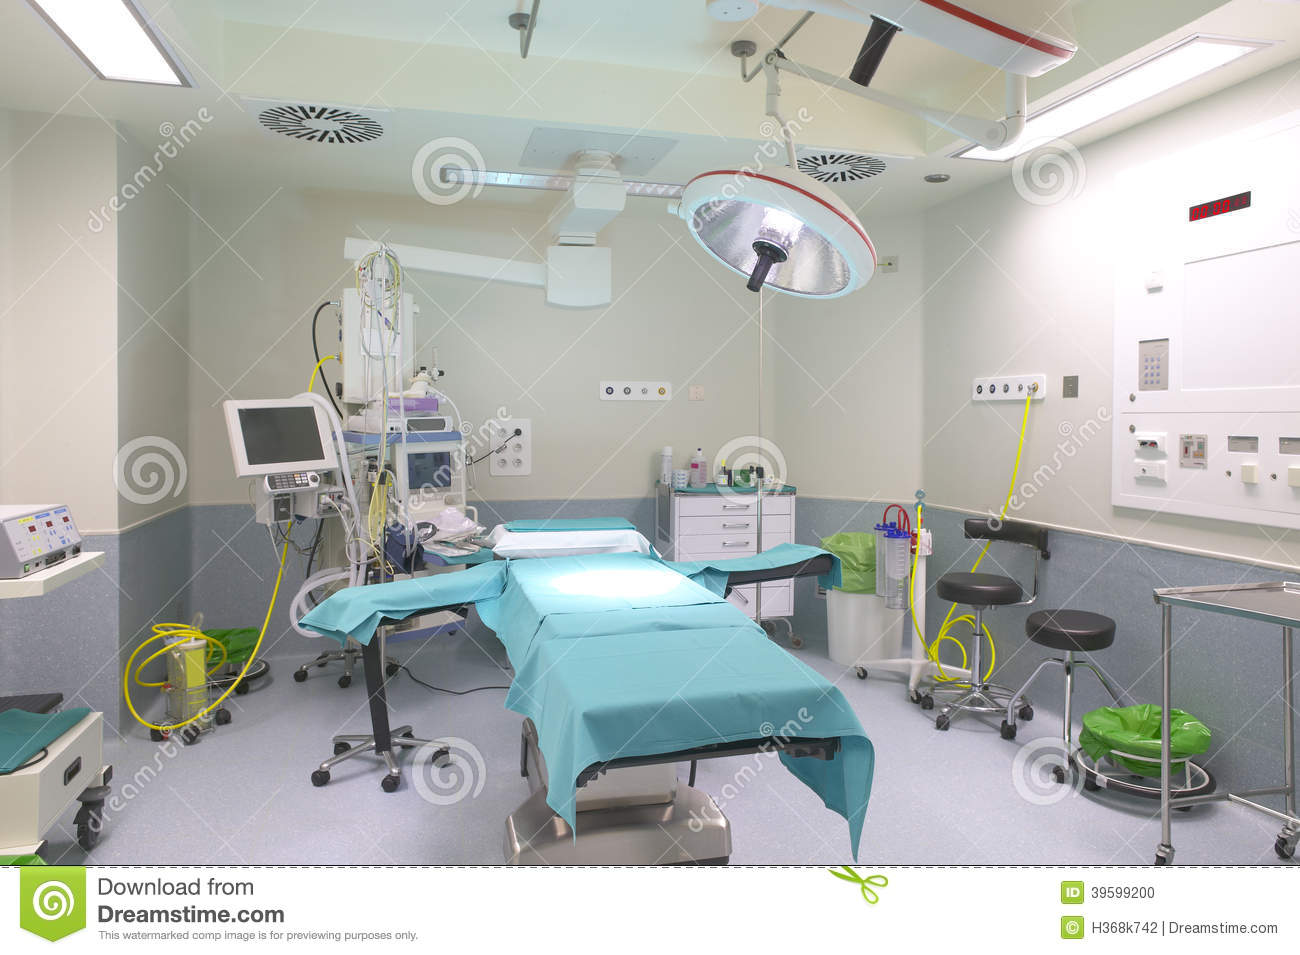 Surgery room interior with medical equipment stock photo for Interior decoration equipment